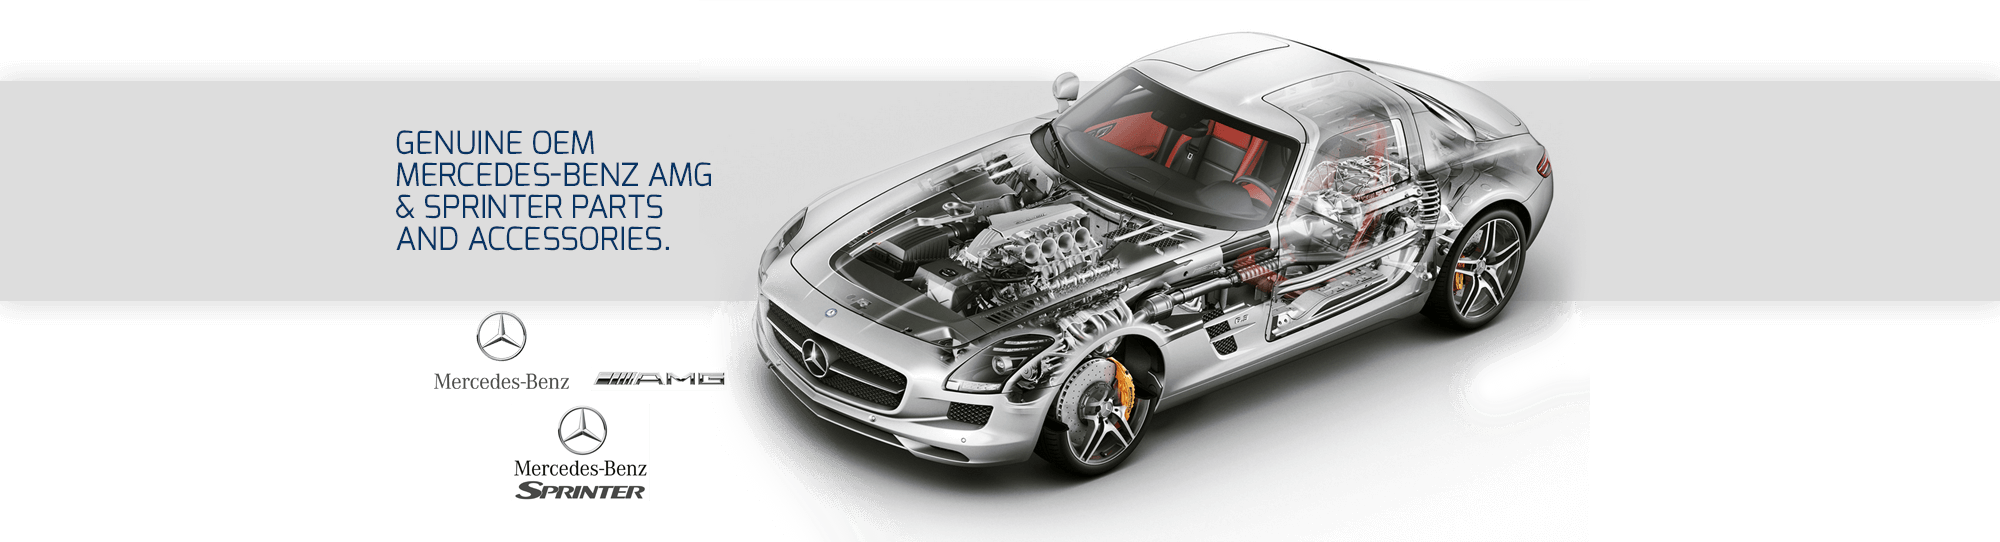 Genuine OEM Mercedes-Benz AMG & Sprinter Parts and Accessories.